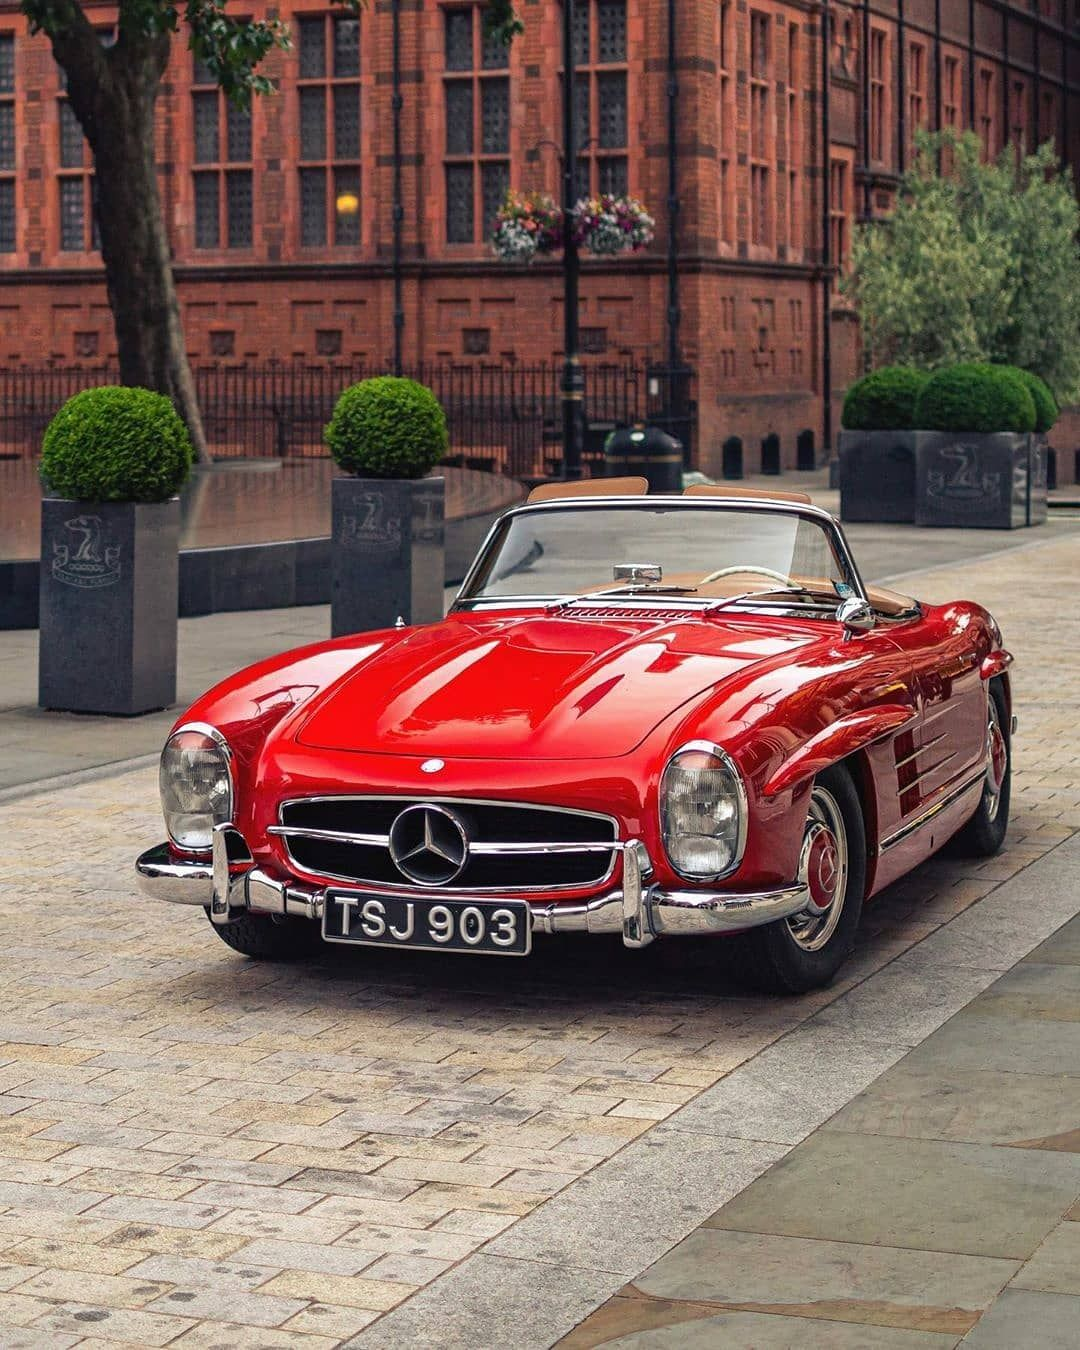 "@iamoctoberman on Instagram: ""Beauty in red. Classic Mercedes 300SL from @horsepower_hunters  #MercedesBenz #300SL #ThrowBack #HorsepowerHunters #London #germandesign…"""